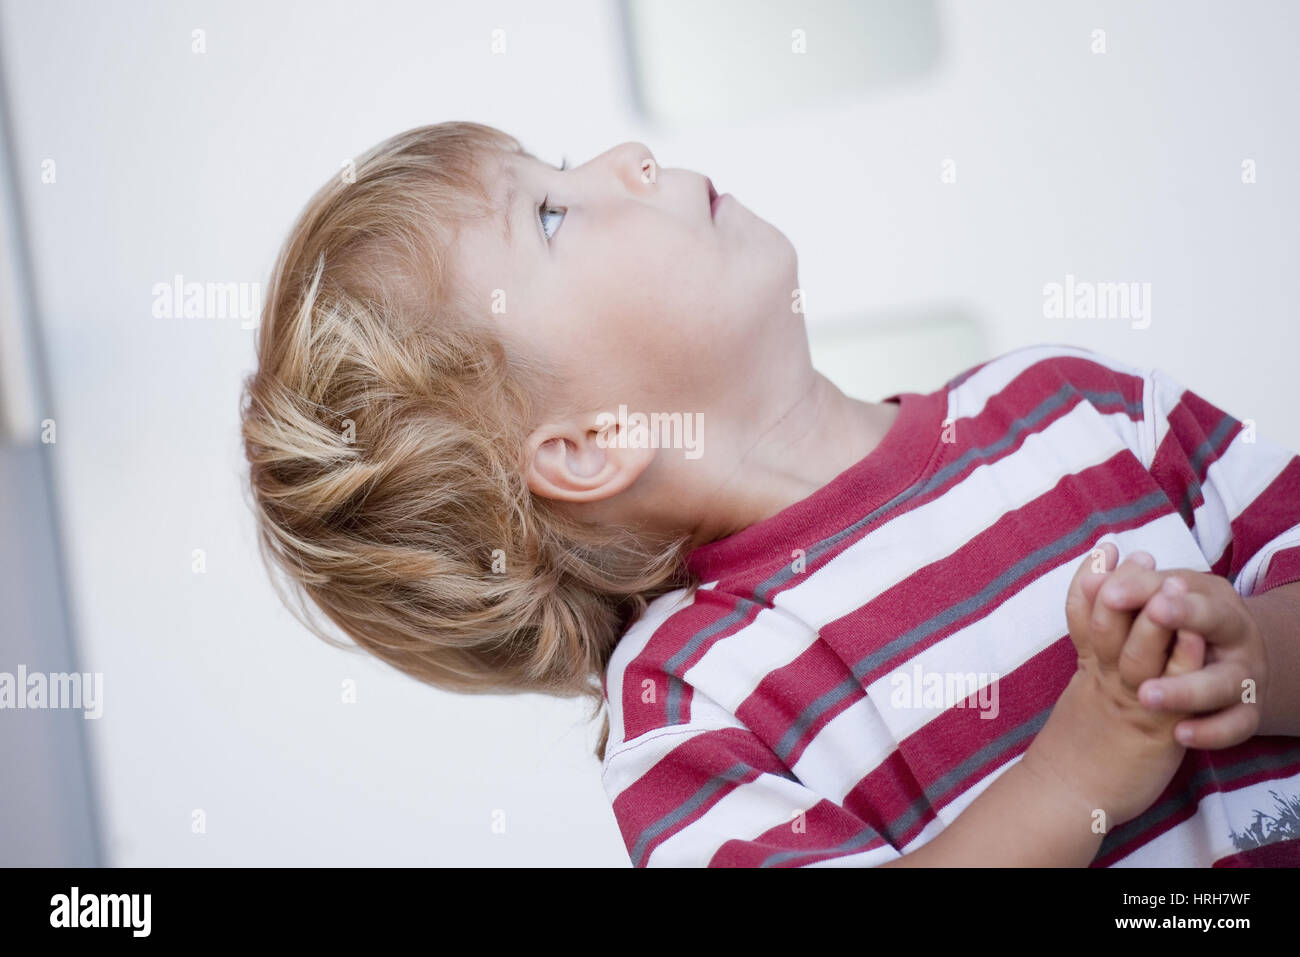 Model released, Kleiner Junge blickt nach oben - little boy looking up Stock Photo